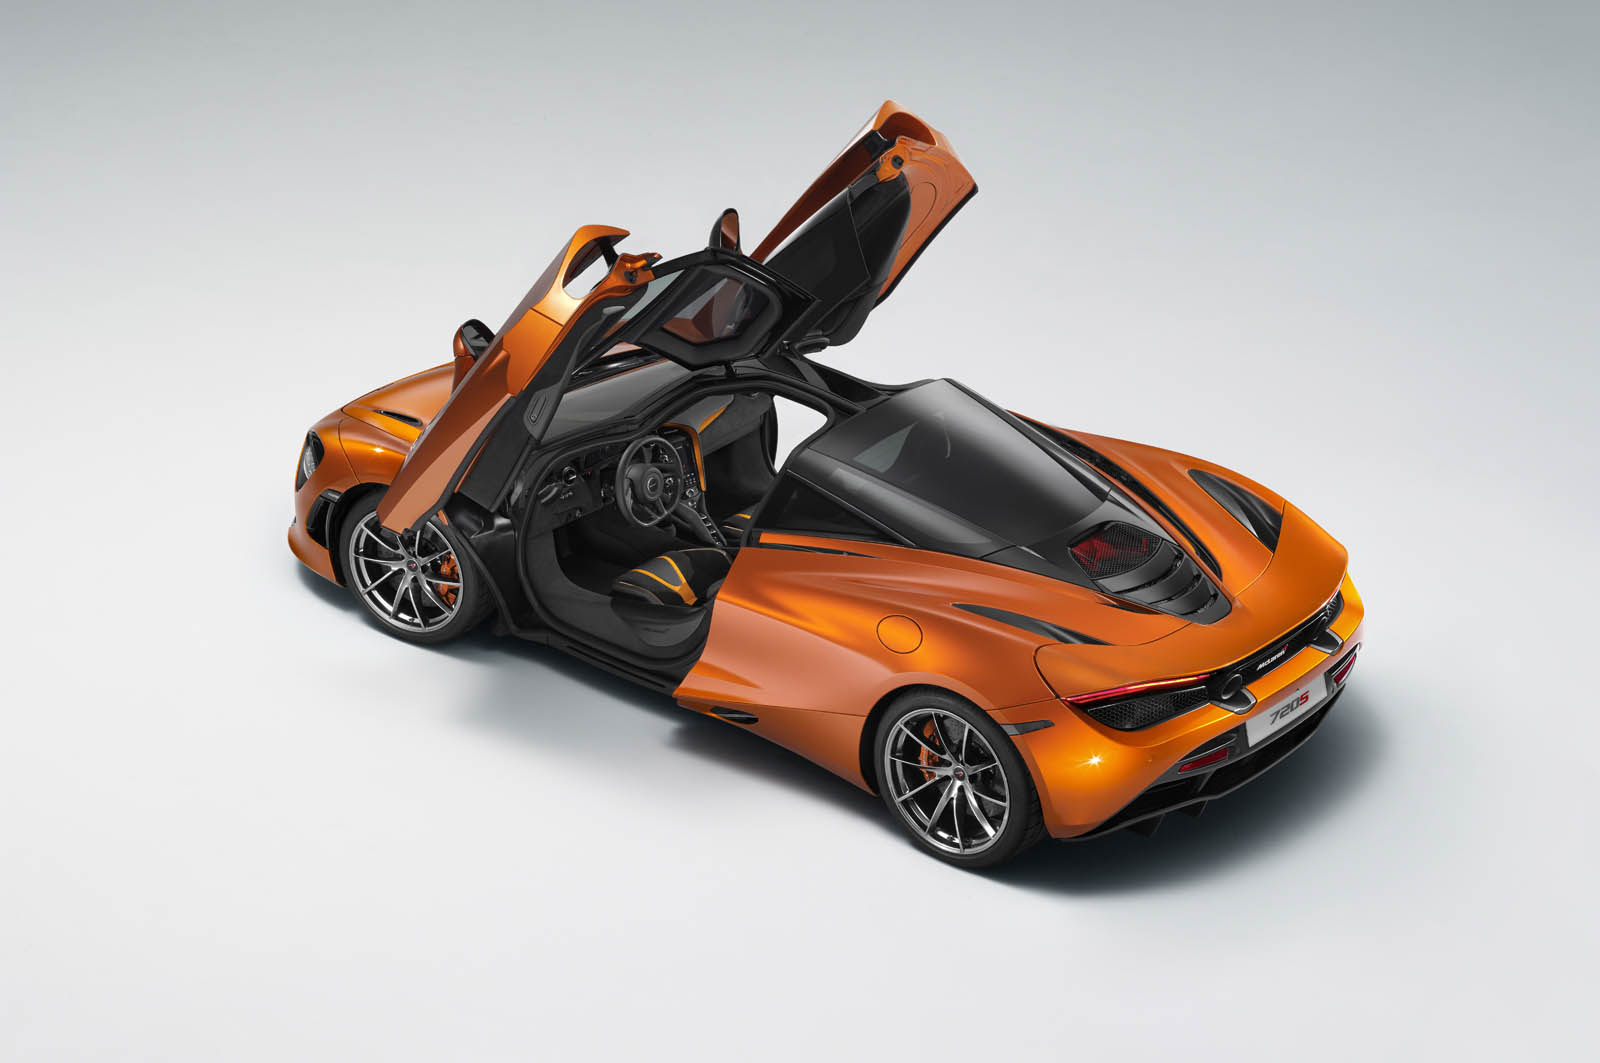 ©McLarenAutomotive www.mclarenautomotive.com www.media.mclarenautomotive.com www.facebook.com/mclarenautomotive